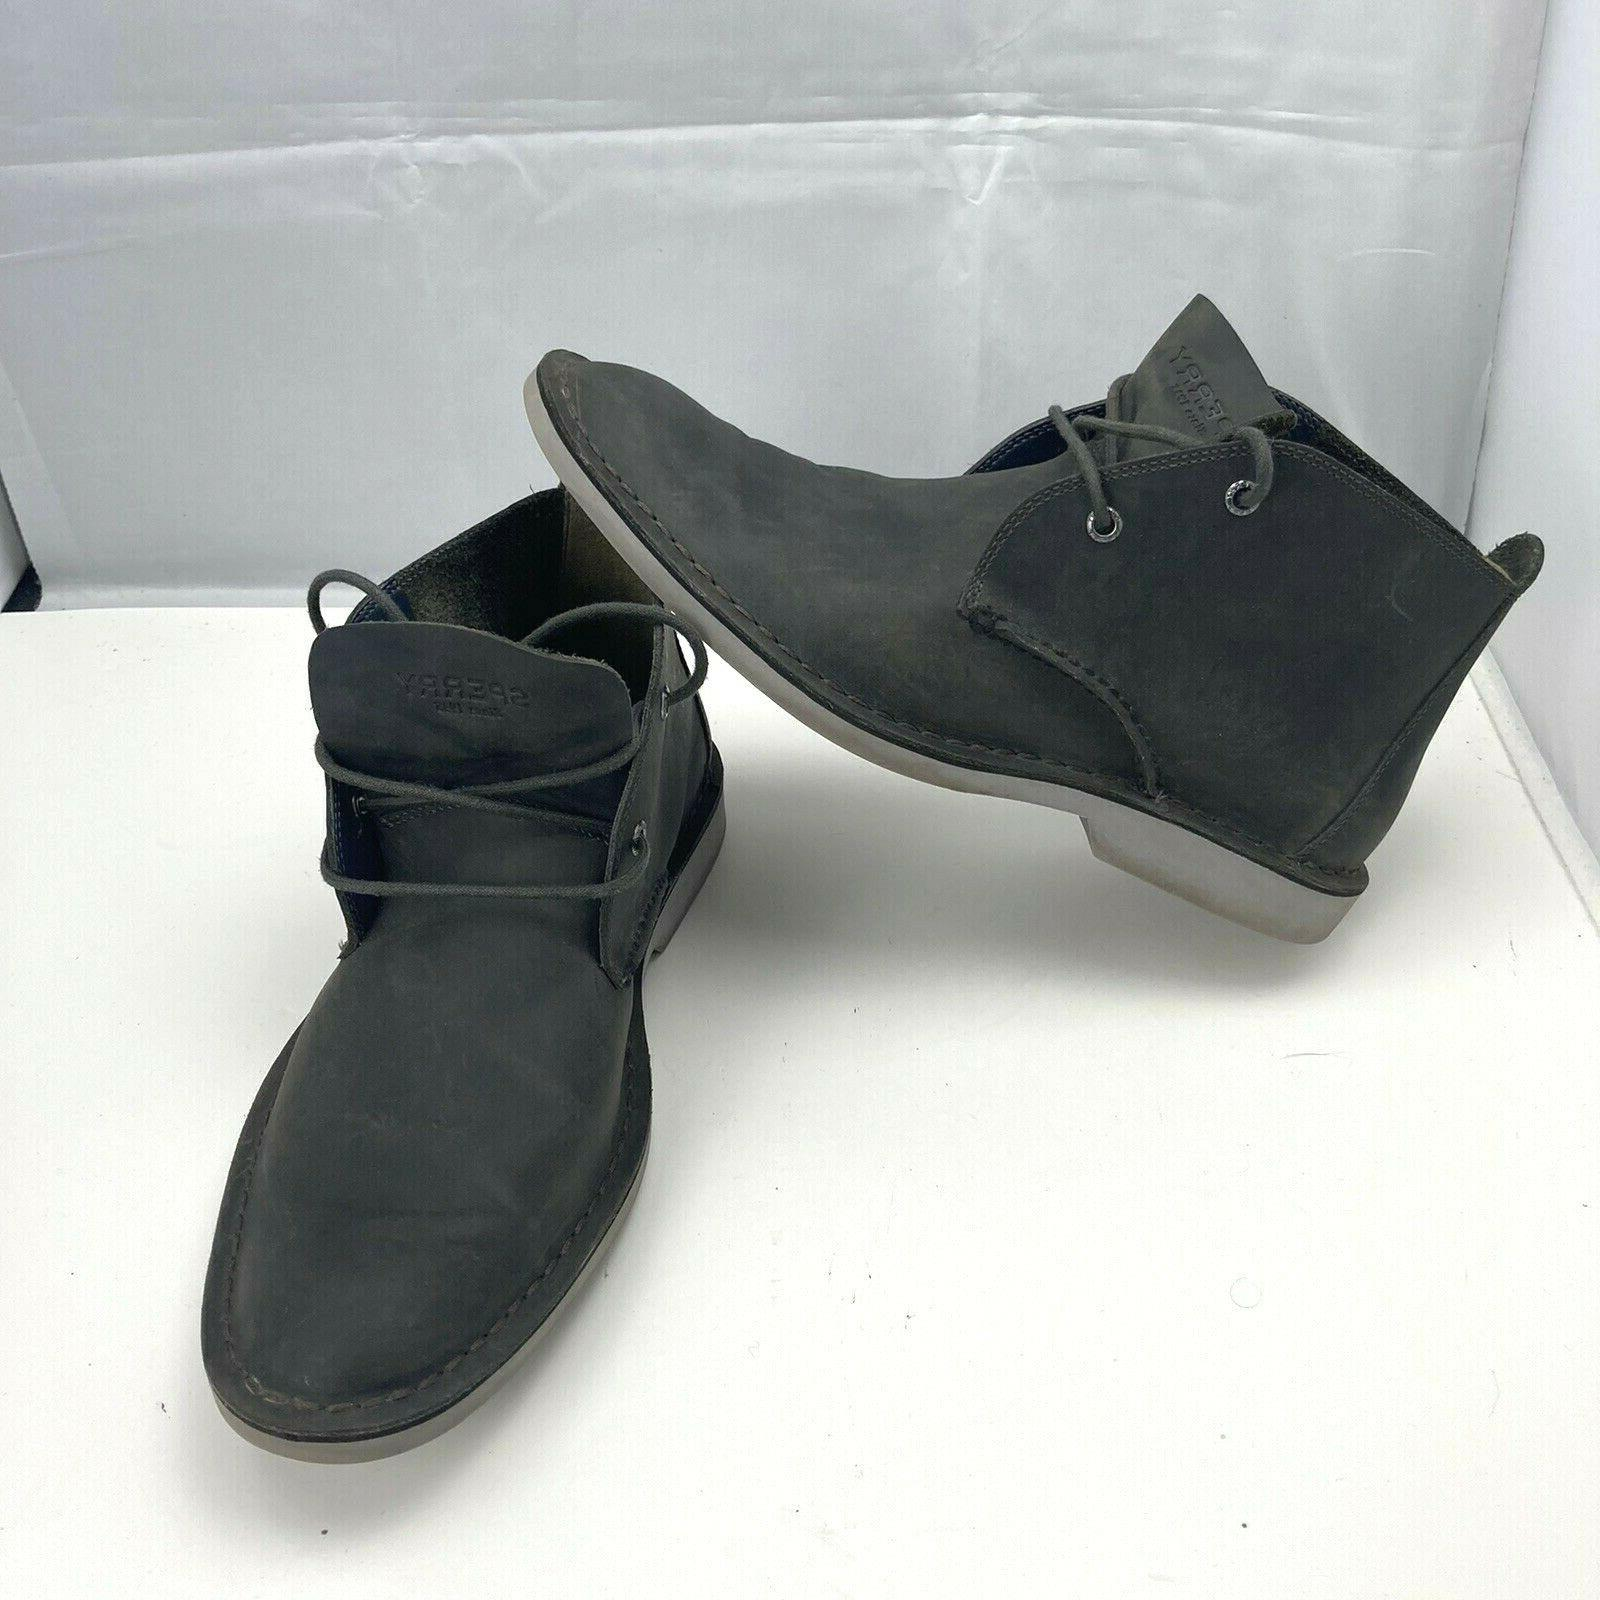 sperry top sider chukka boots black aged